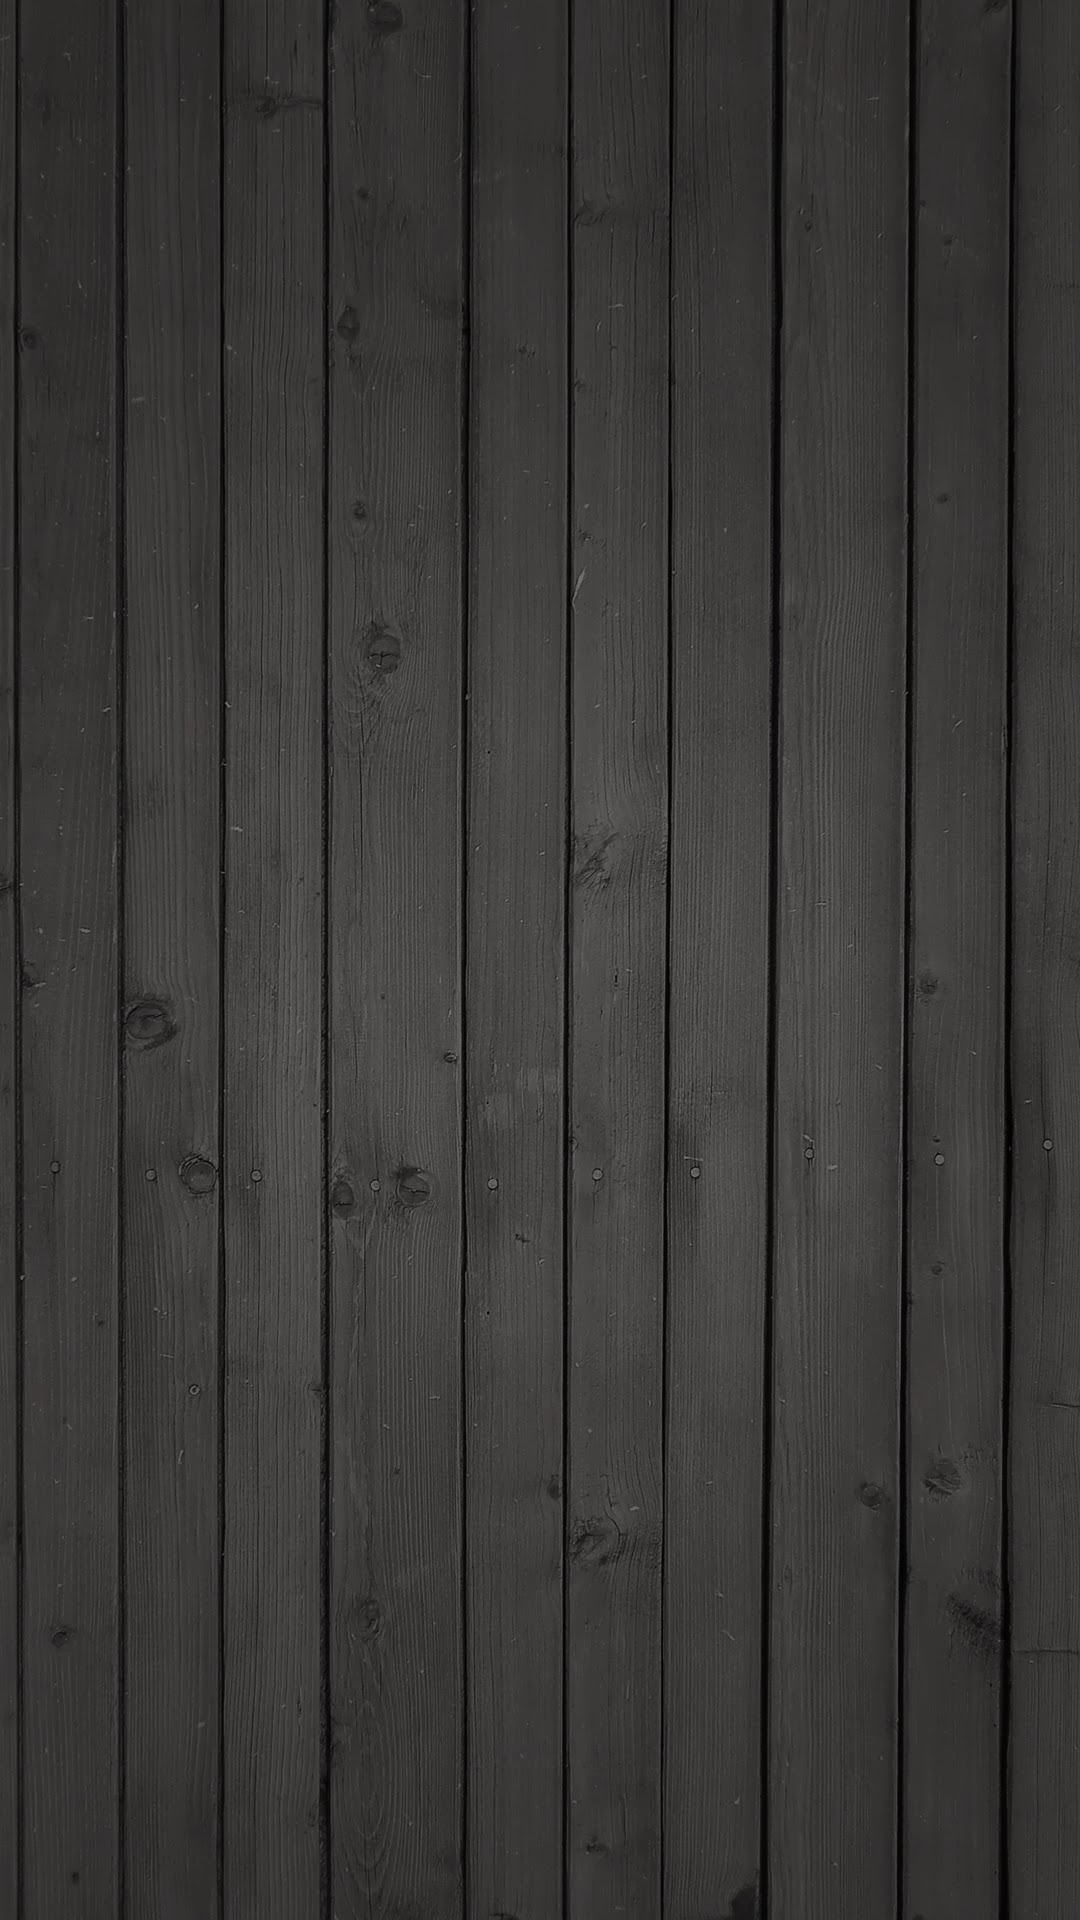 abstract wood - best htc one wallpapers, free and easy to download